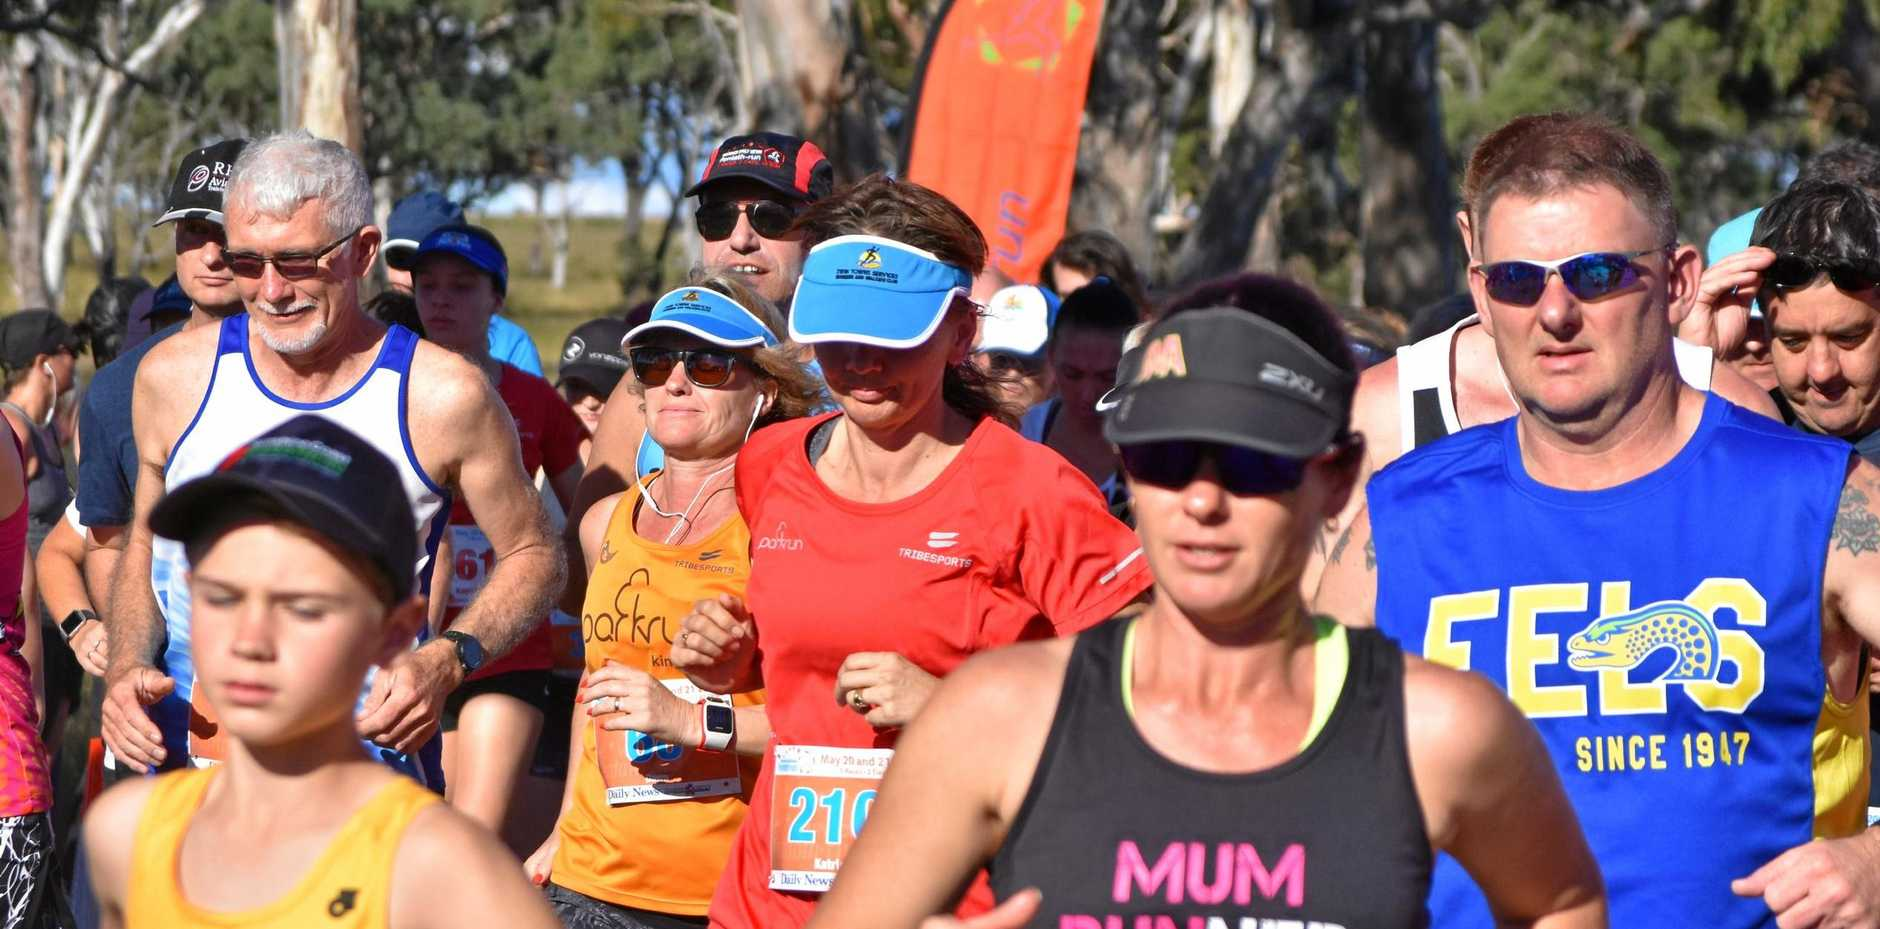 Registrations are open for the 2018 Pentath-run.